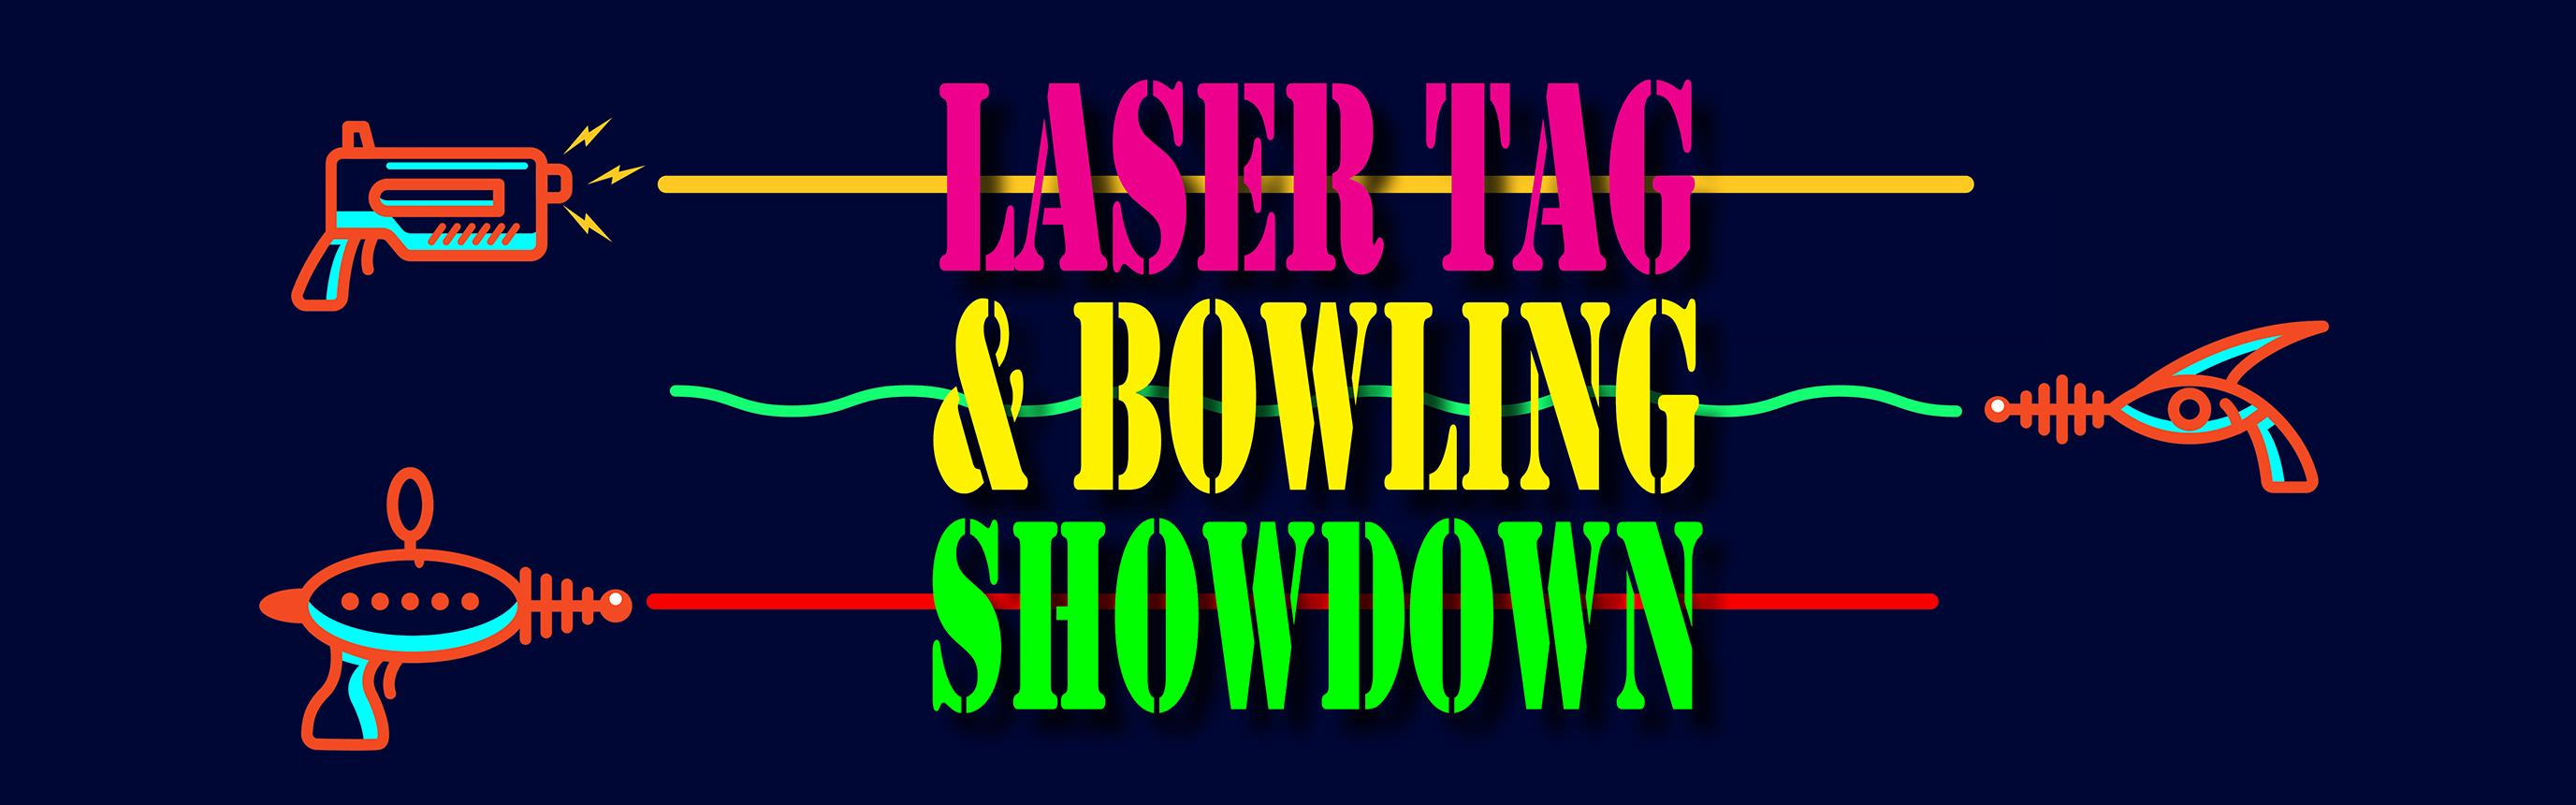 Laser Tag & Bowling Showdown